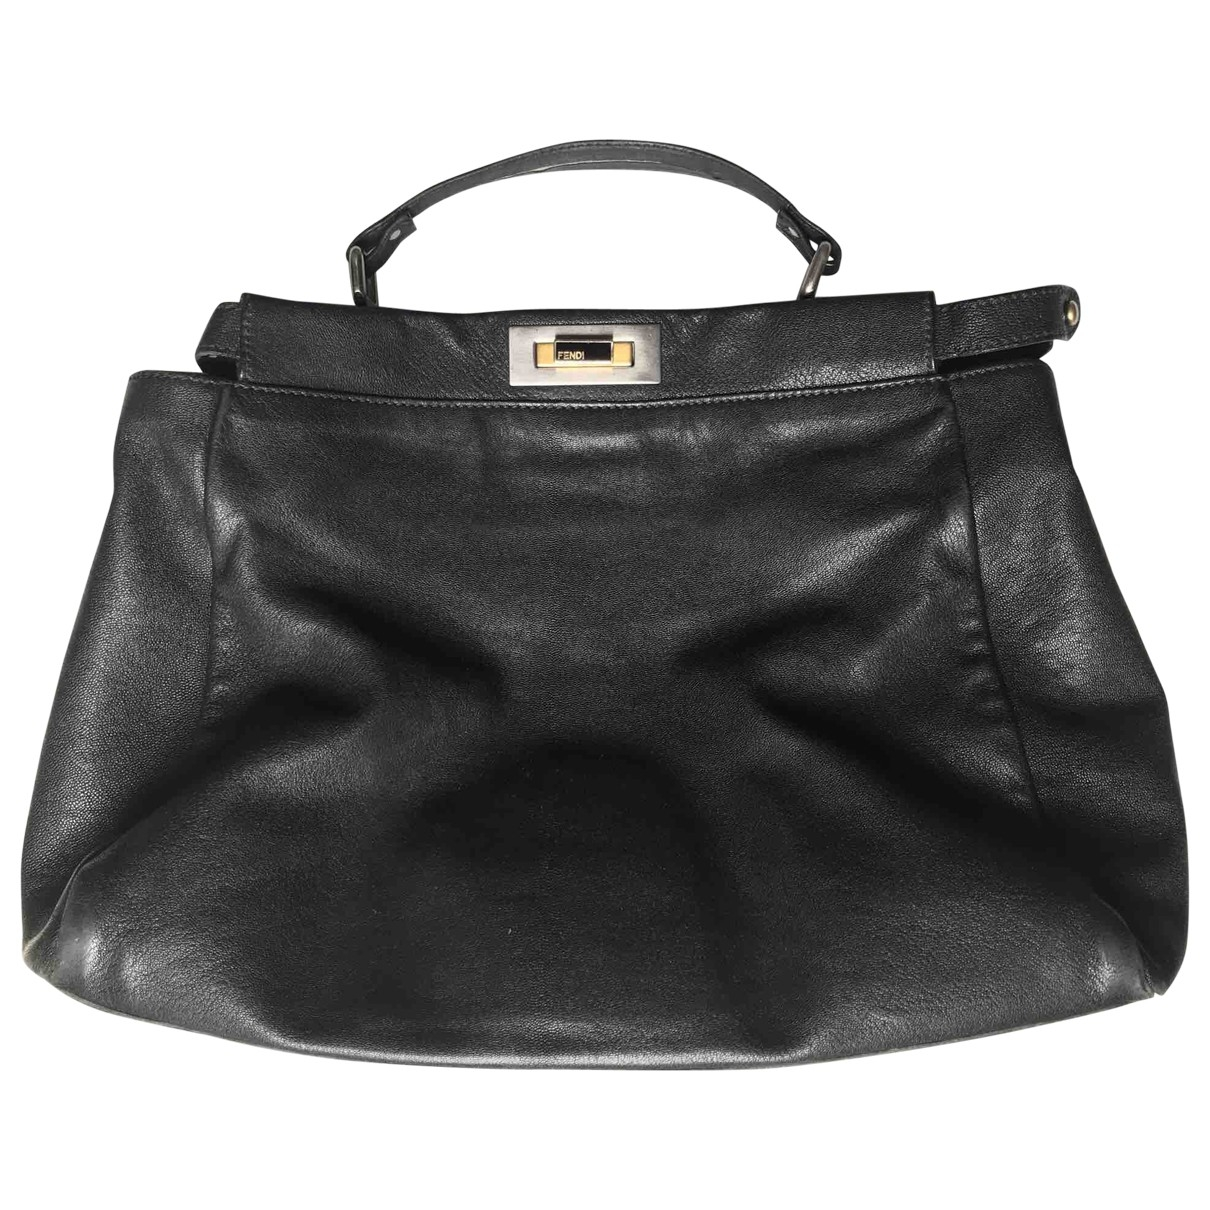 Fendi Peekaboo Black Leather handbag for Women \N